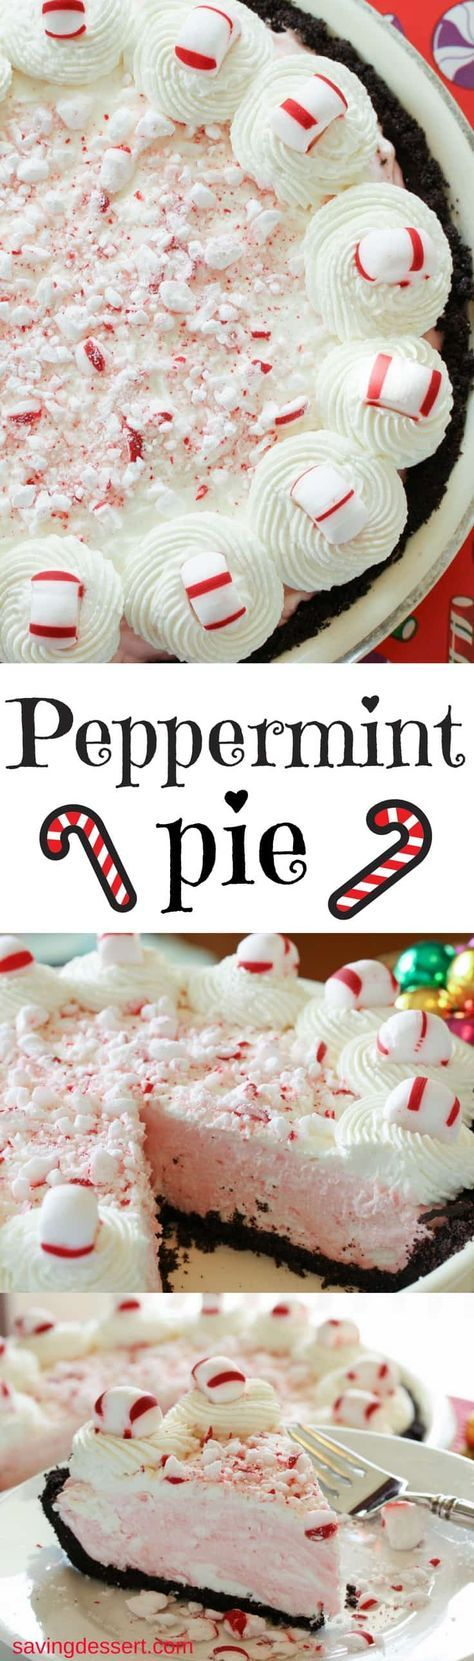 Peppermint Pie ~ Light and fluffy, simple and sweet, with all the flavors of the holiday season!  www.savingdessert.com